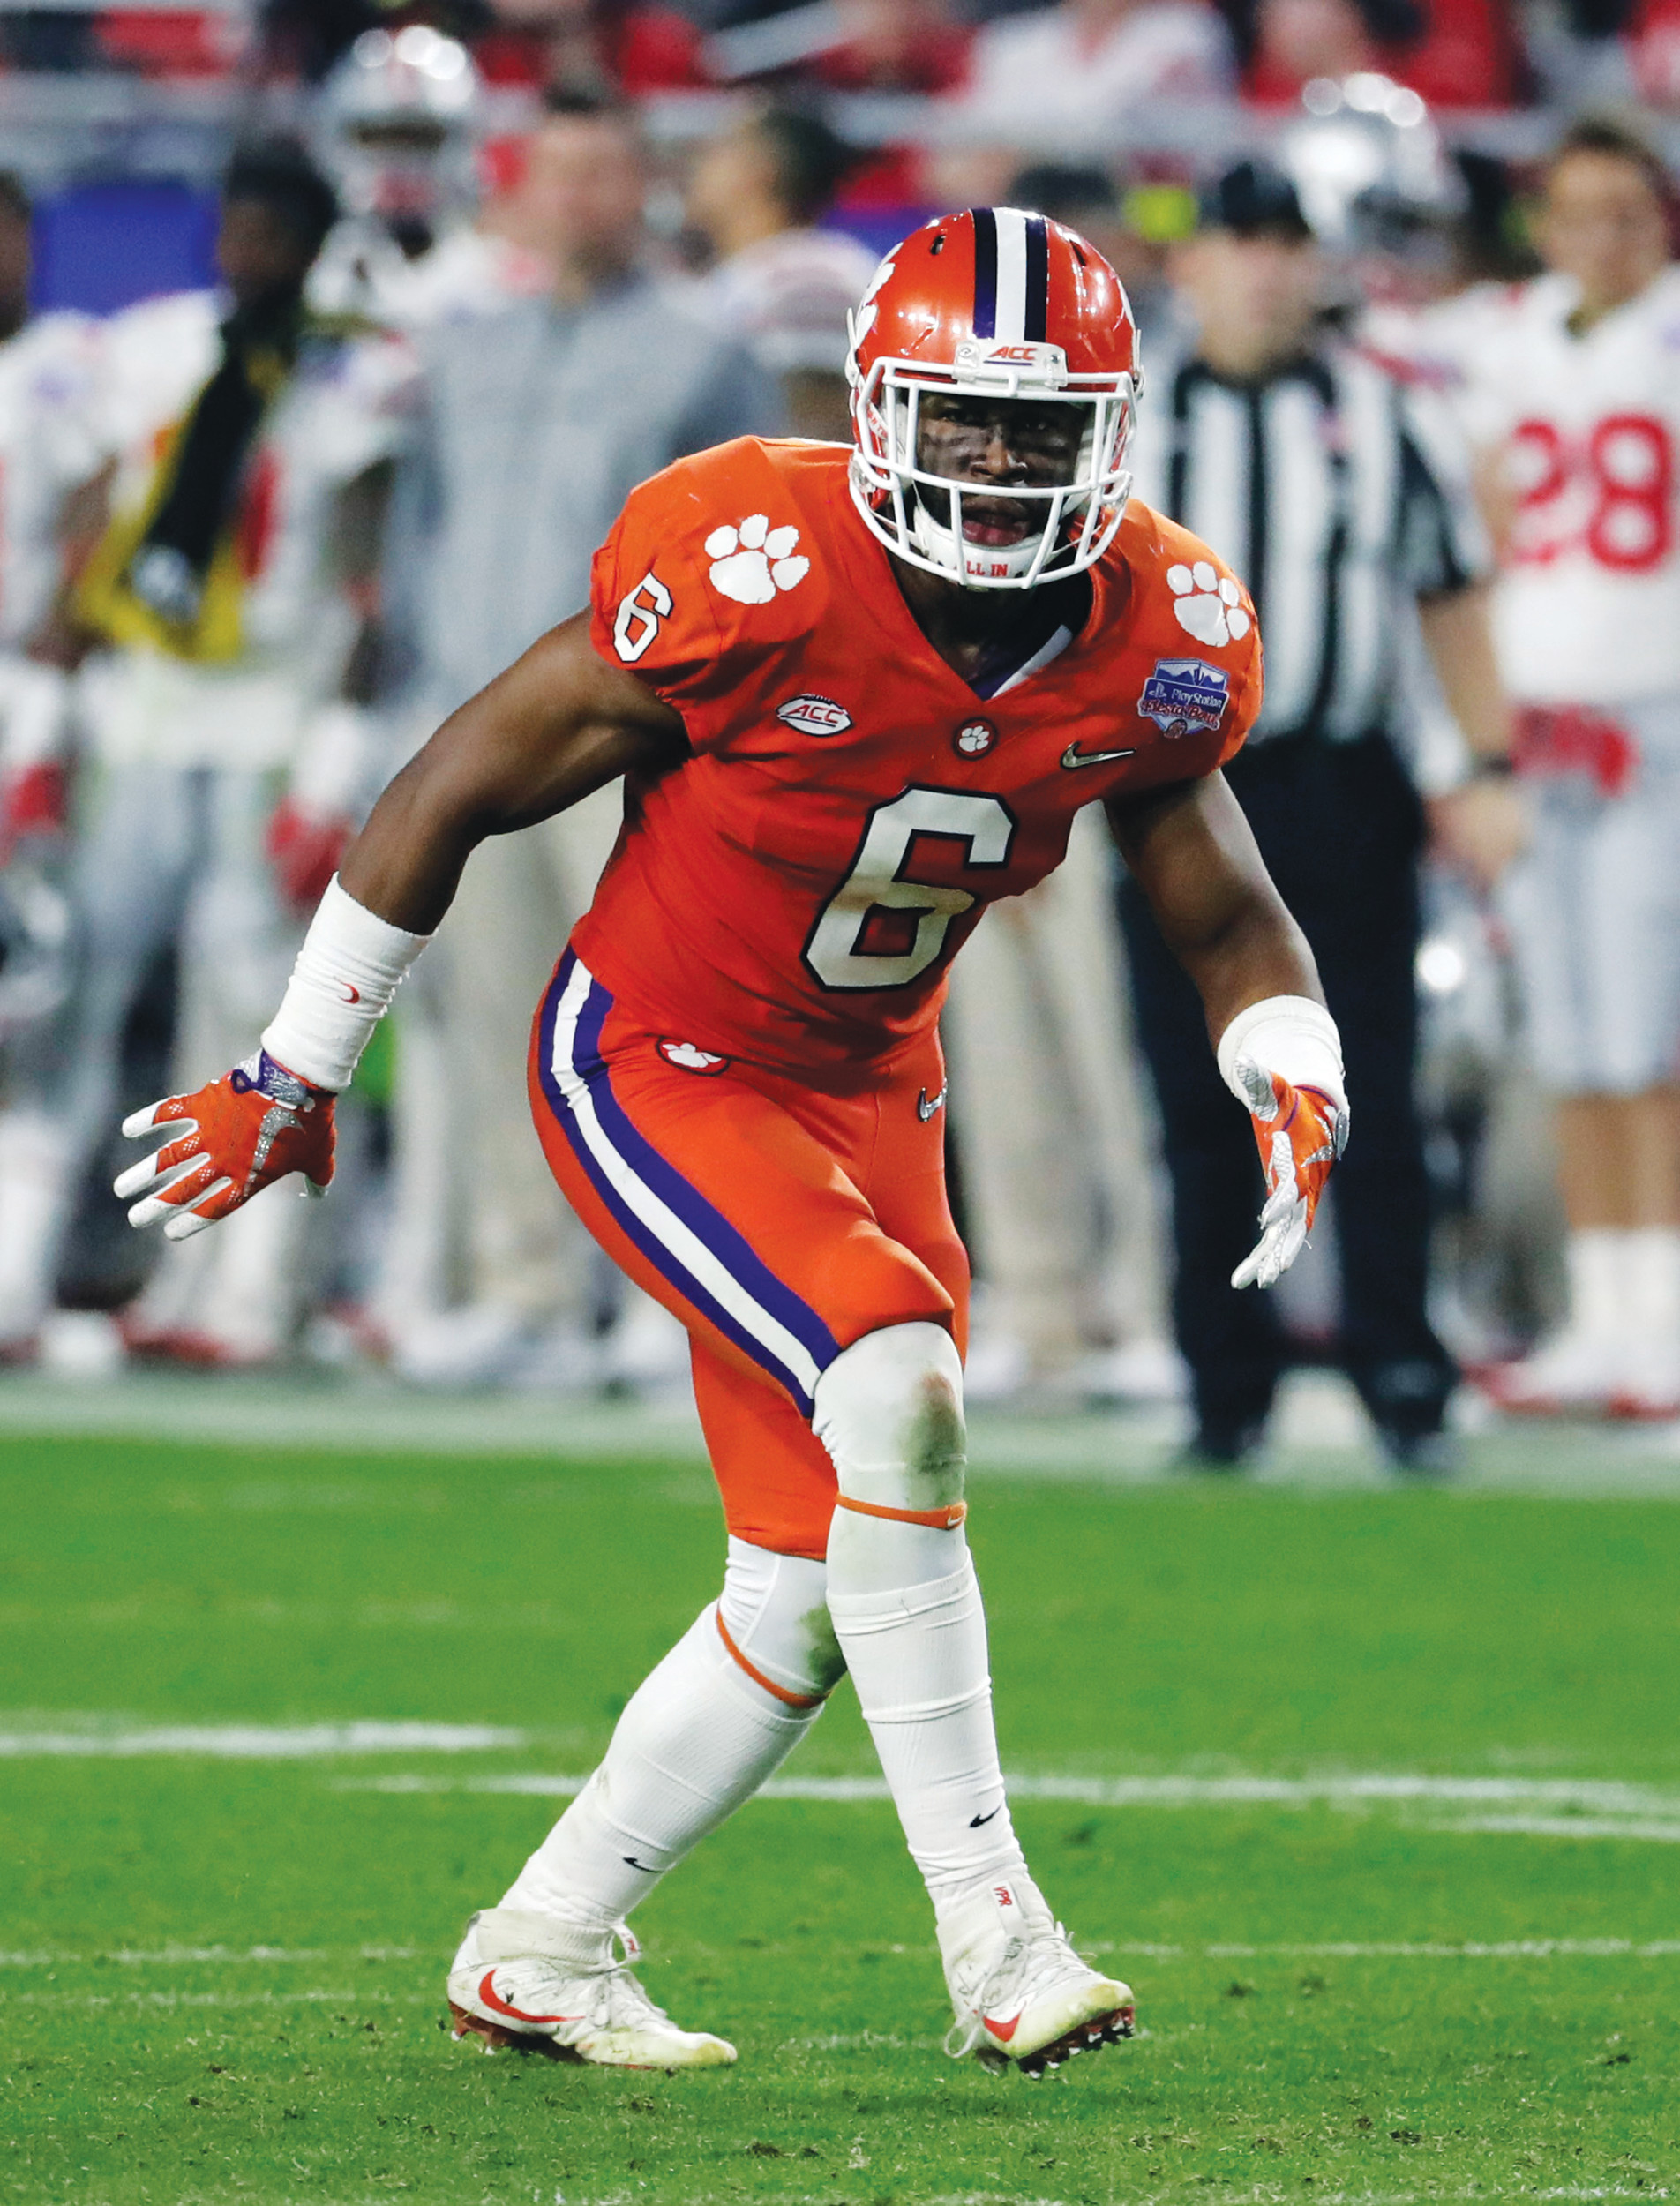 Clemson linebacker Dorian O'Daniel (6) and the rest of the Tigers began preparation on Tuesday for their national semifinal game against Alabama in the Sugar Bowl on Jan. 1.